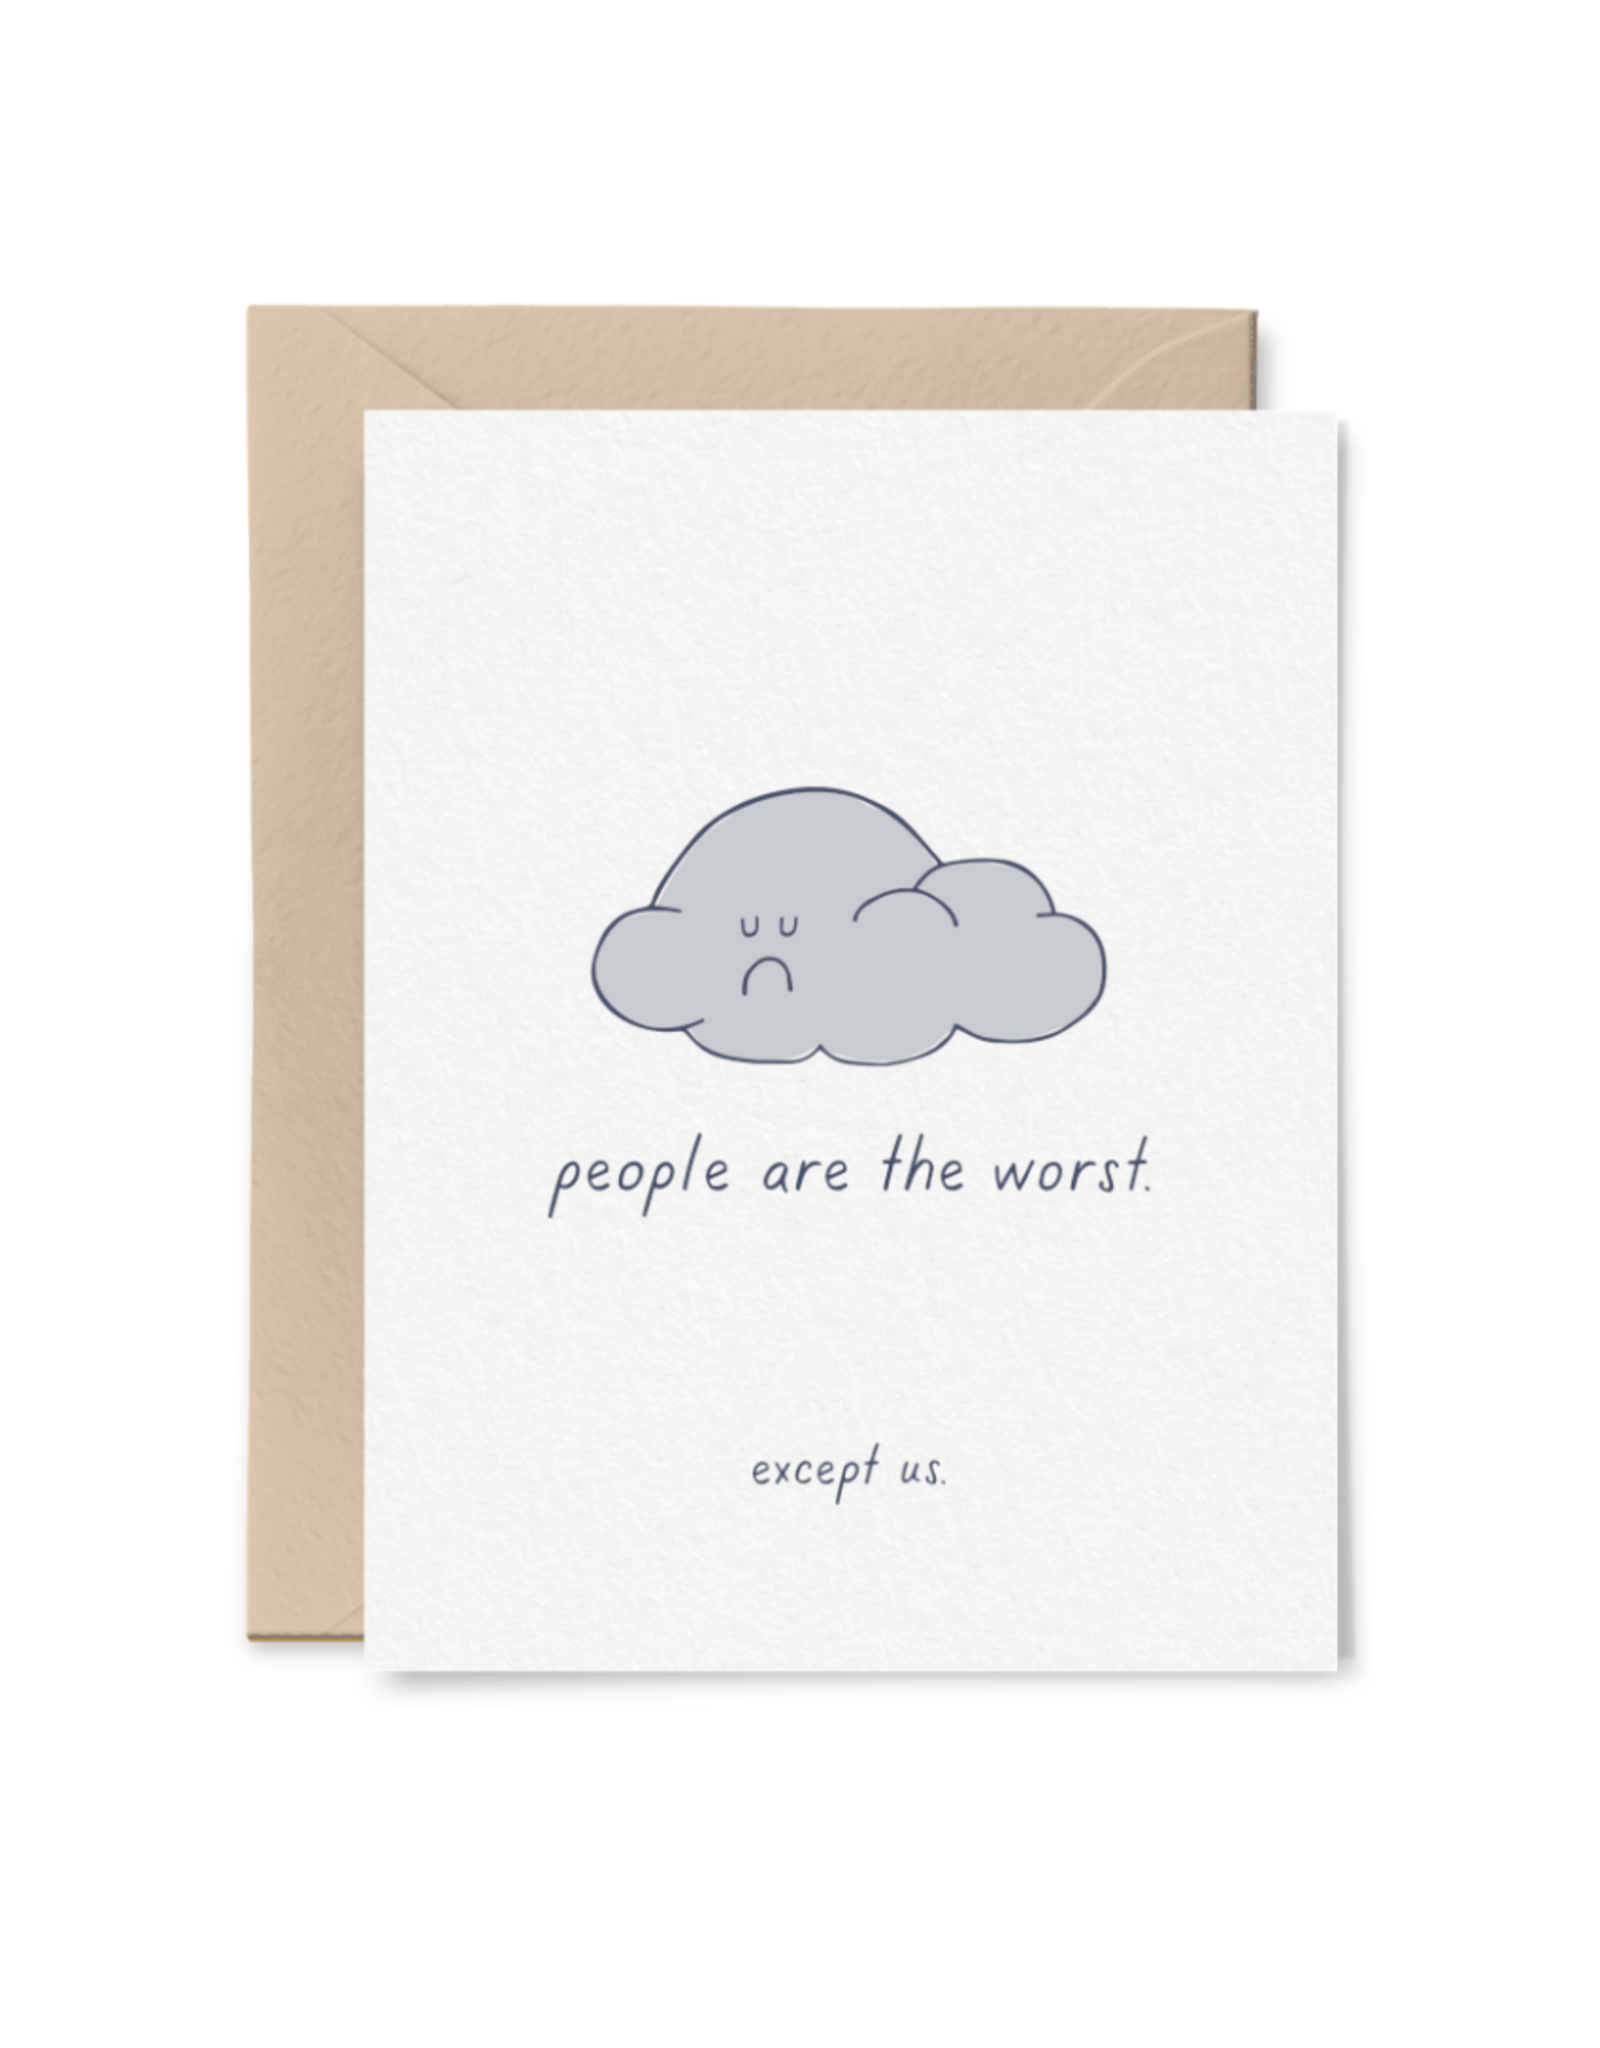 Little goat paper company Card - Blank: People are the worst